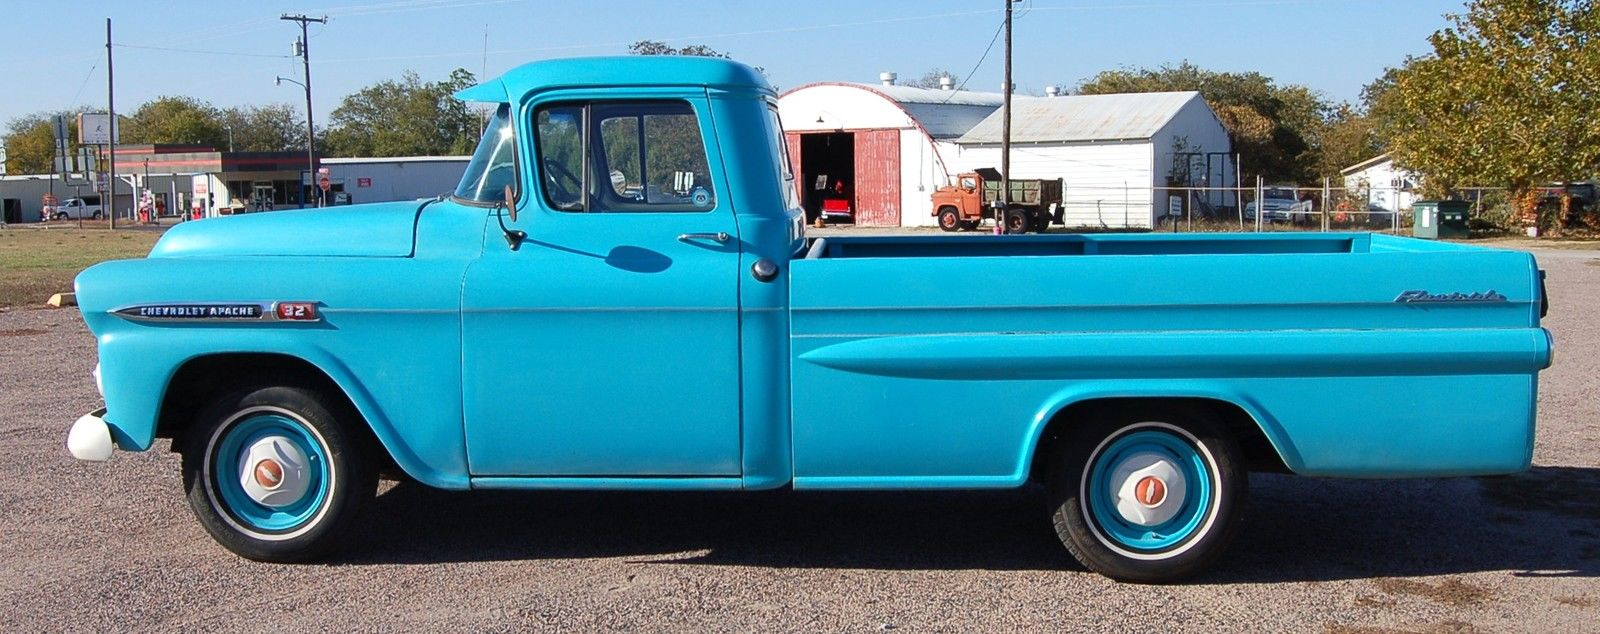 1959 chevy apache 3200 pickup truck 235 6 cylinder for sale in pilot point texas united states. Black Bedroom Furniture Sets. Home Design Ideas